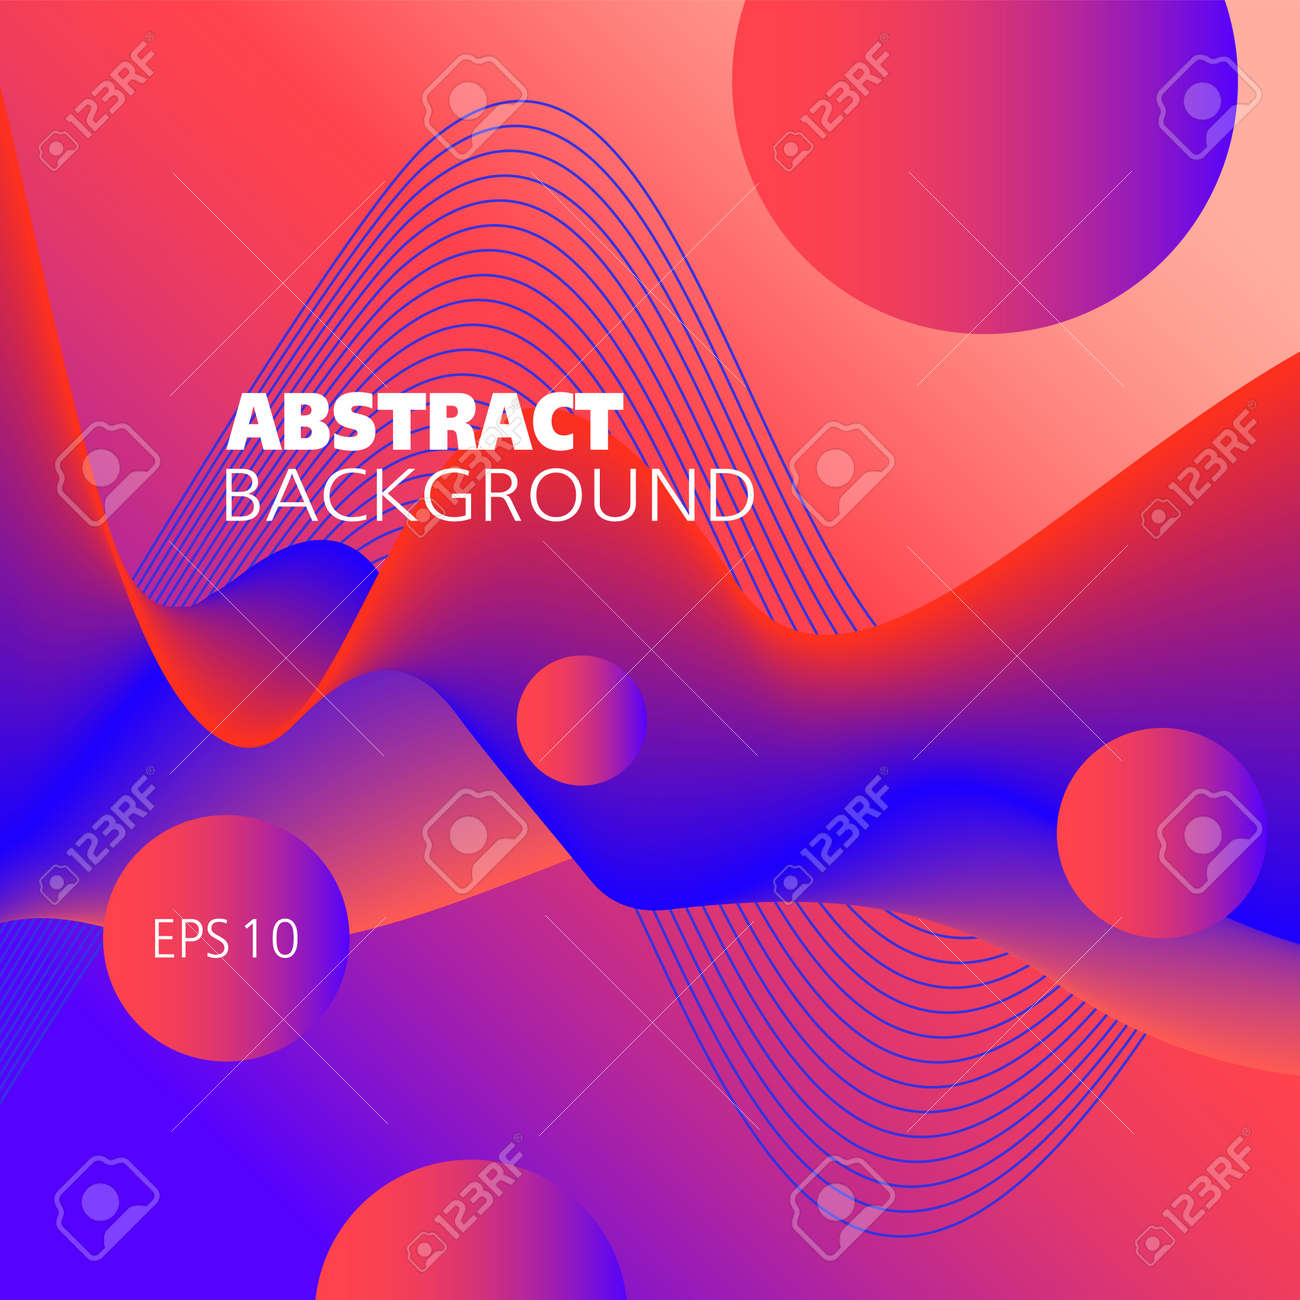 Liquid pattern, vector background. Bright red, blue fluid. Abstract wave and flying spheres. 3d shape, motion illusion. Futuristic design for decor, smart concepts, website templates, promotion materials. EPS10 illustration - 165092361